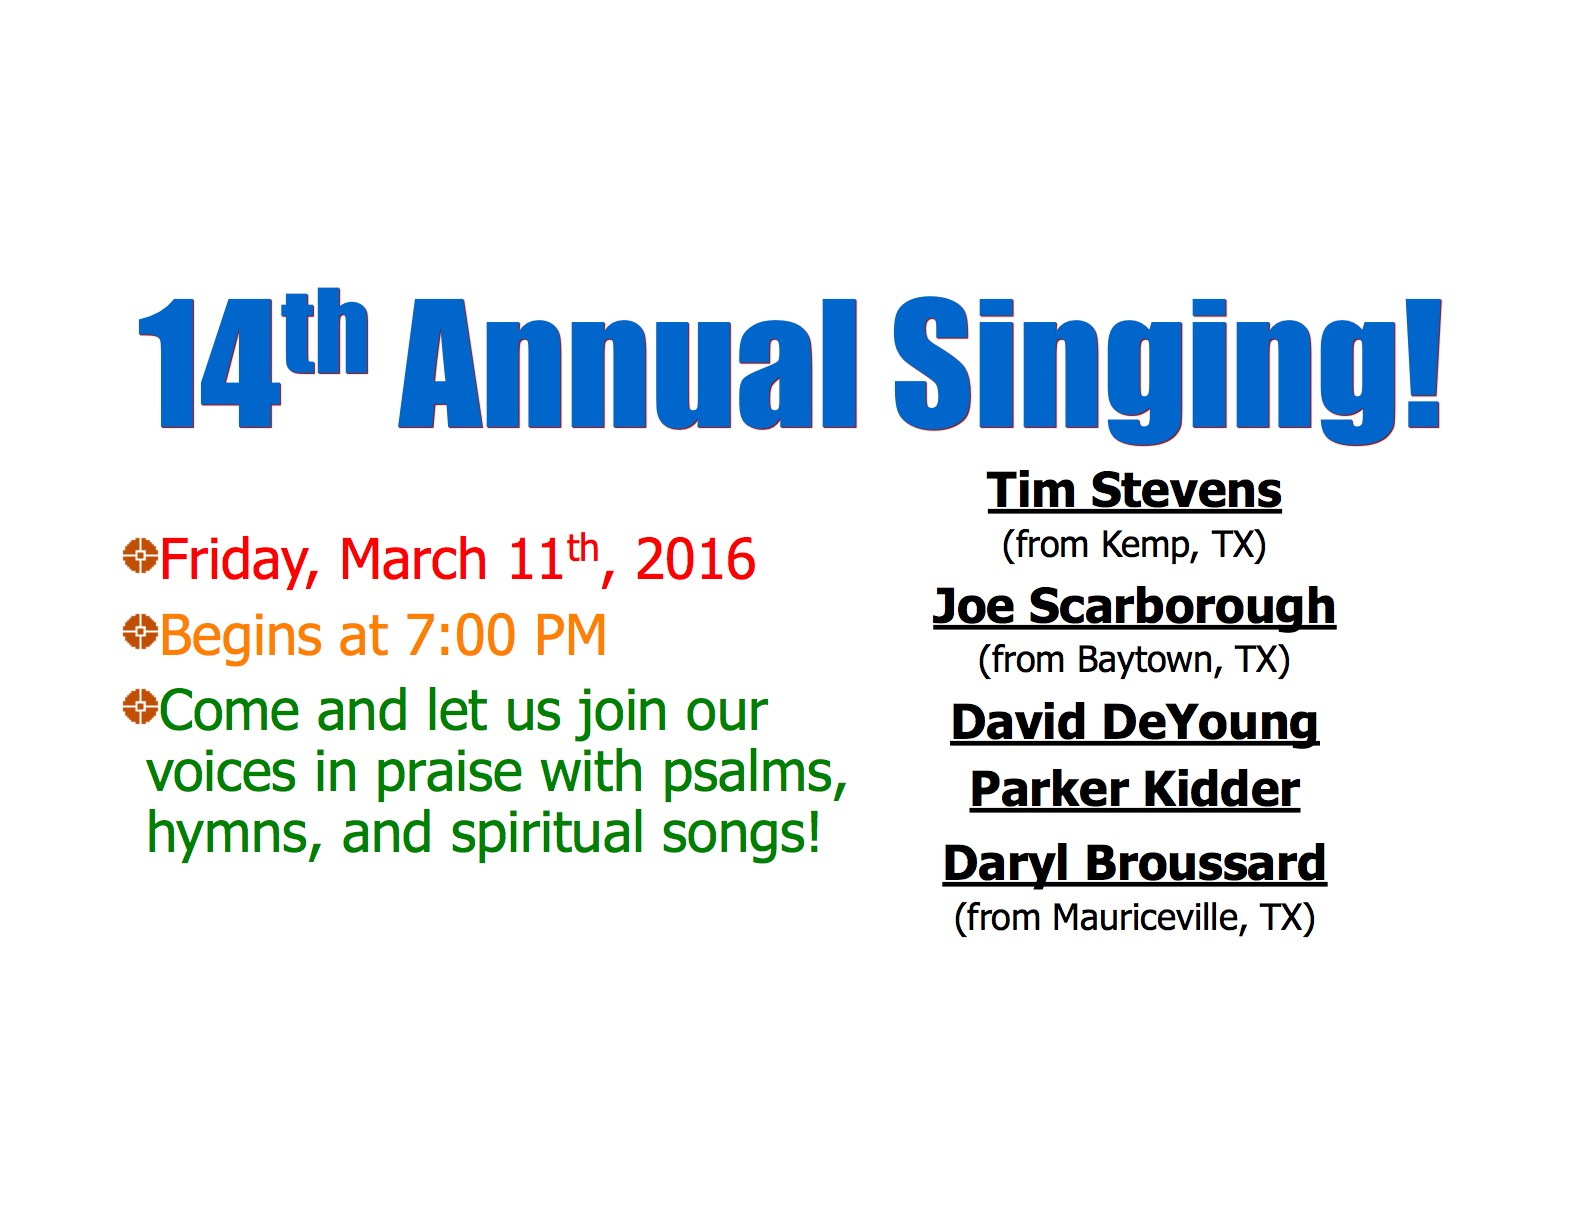 14th Annual Singing